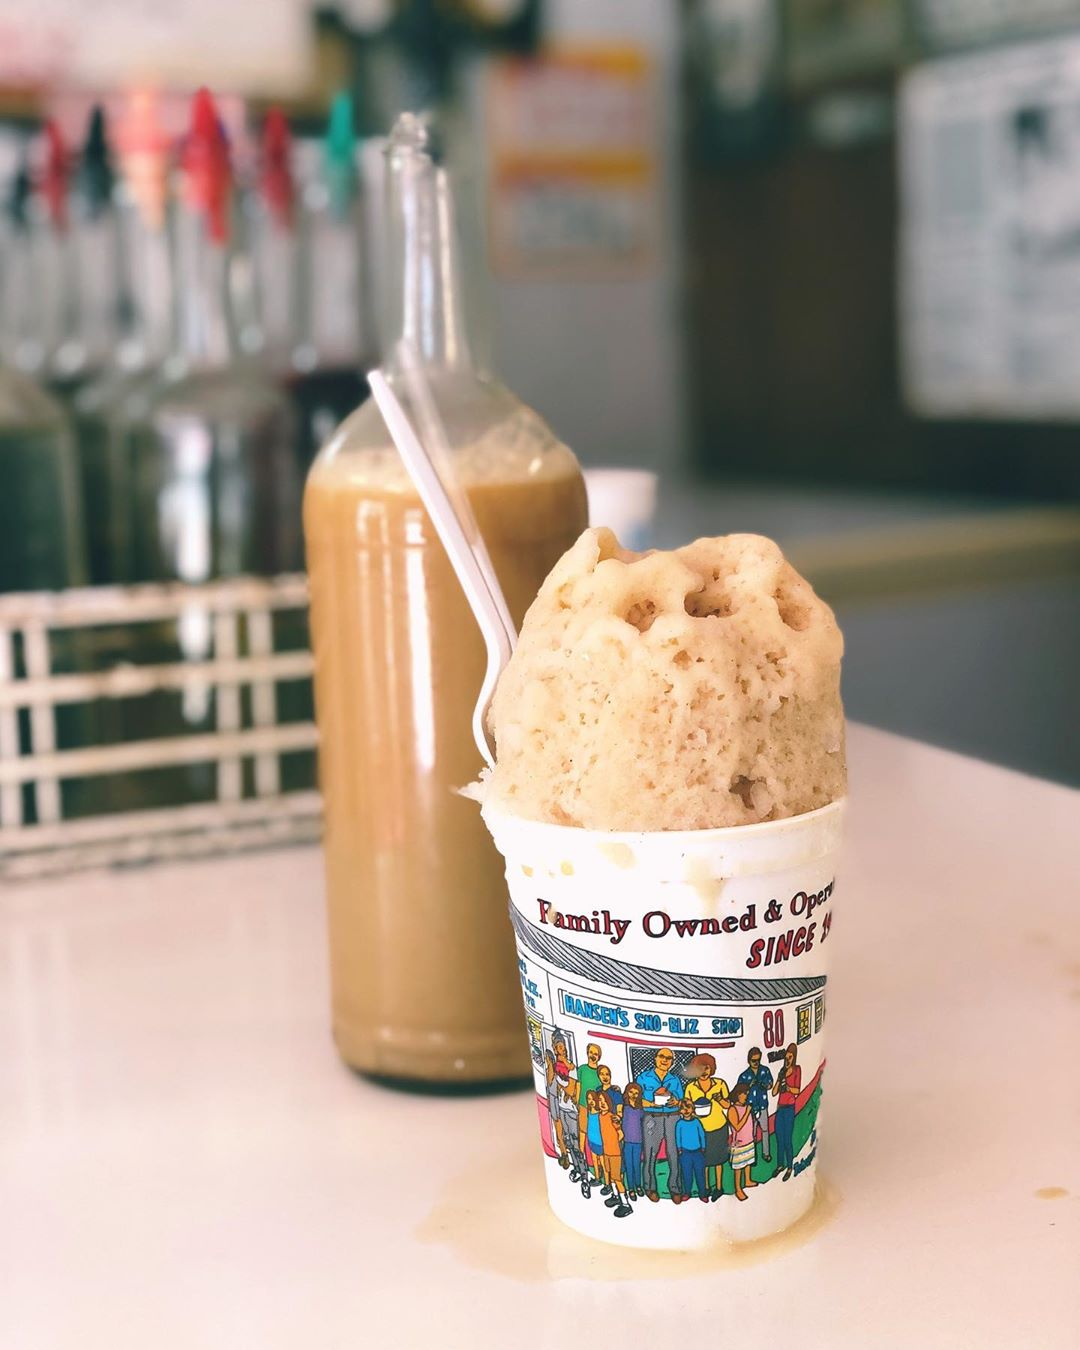 It may not exactly feel like fall yet but we've brought back Cream of Chai, our bold, house blended, caffeinated, real chai tea syrup with whole milk, just so we can all pretend it's cooler together! Enjoy it with Bananas Foster (Foster is served weekdays this fall) or as a Dirty Chai with a pour over of caffeinated Café Sno-Lait syrup.